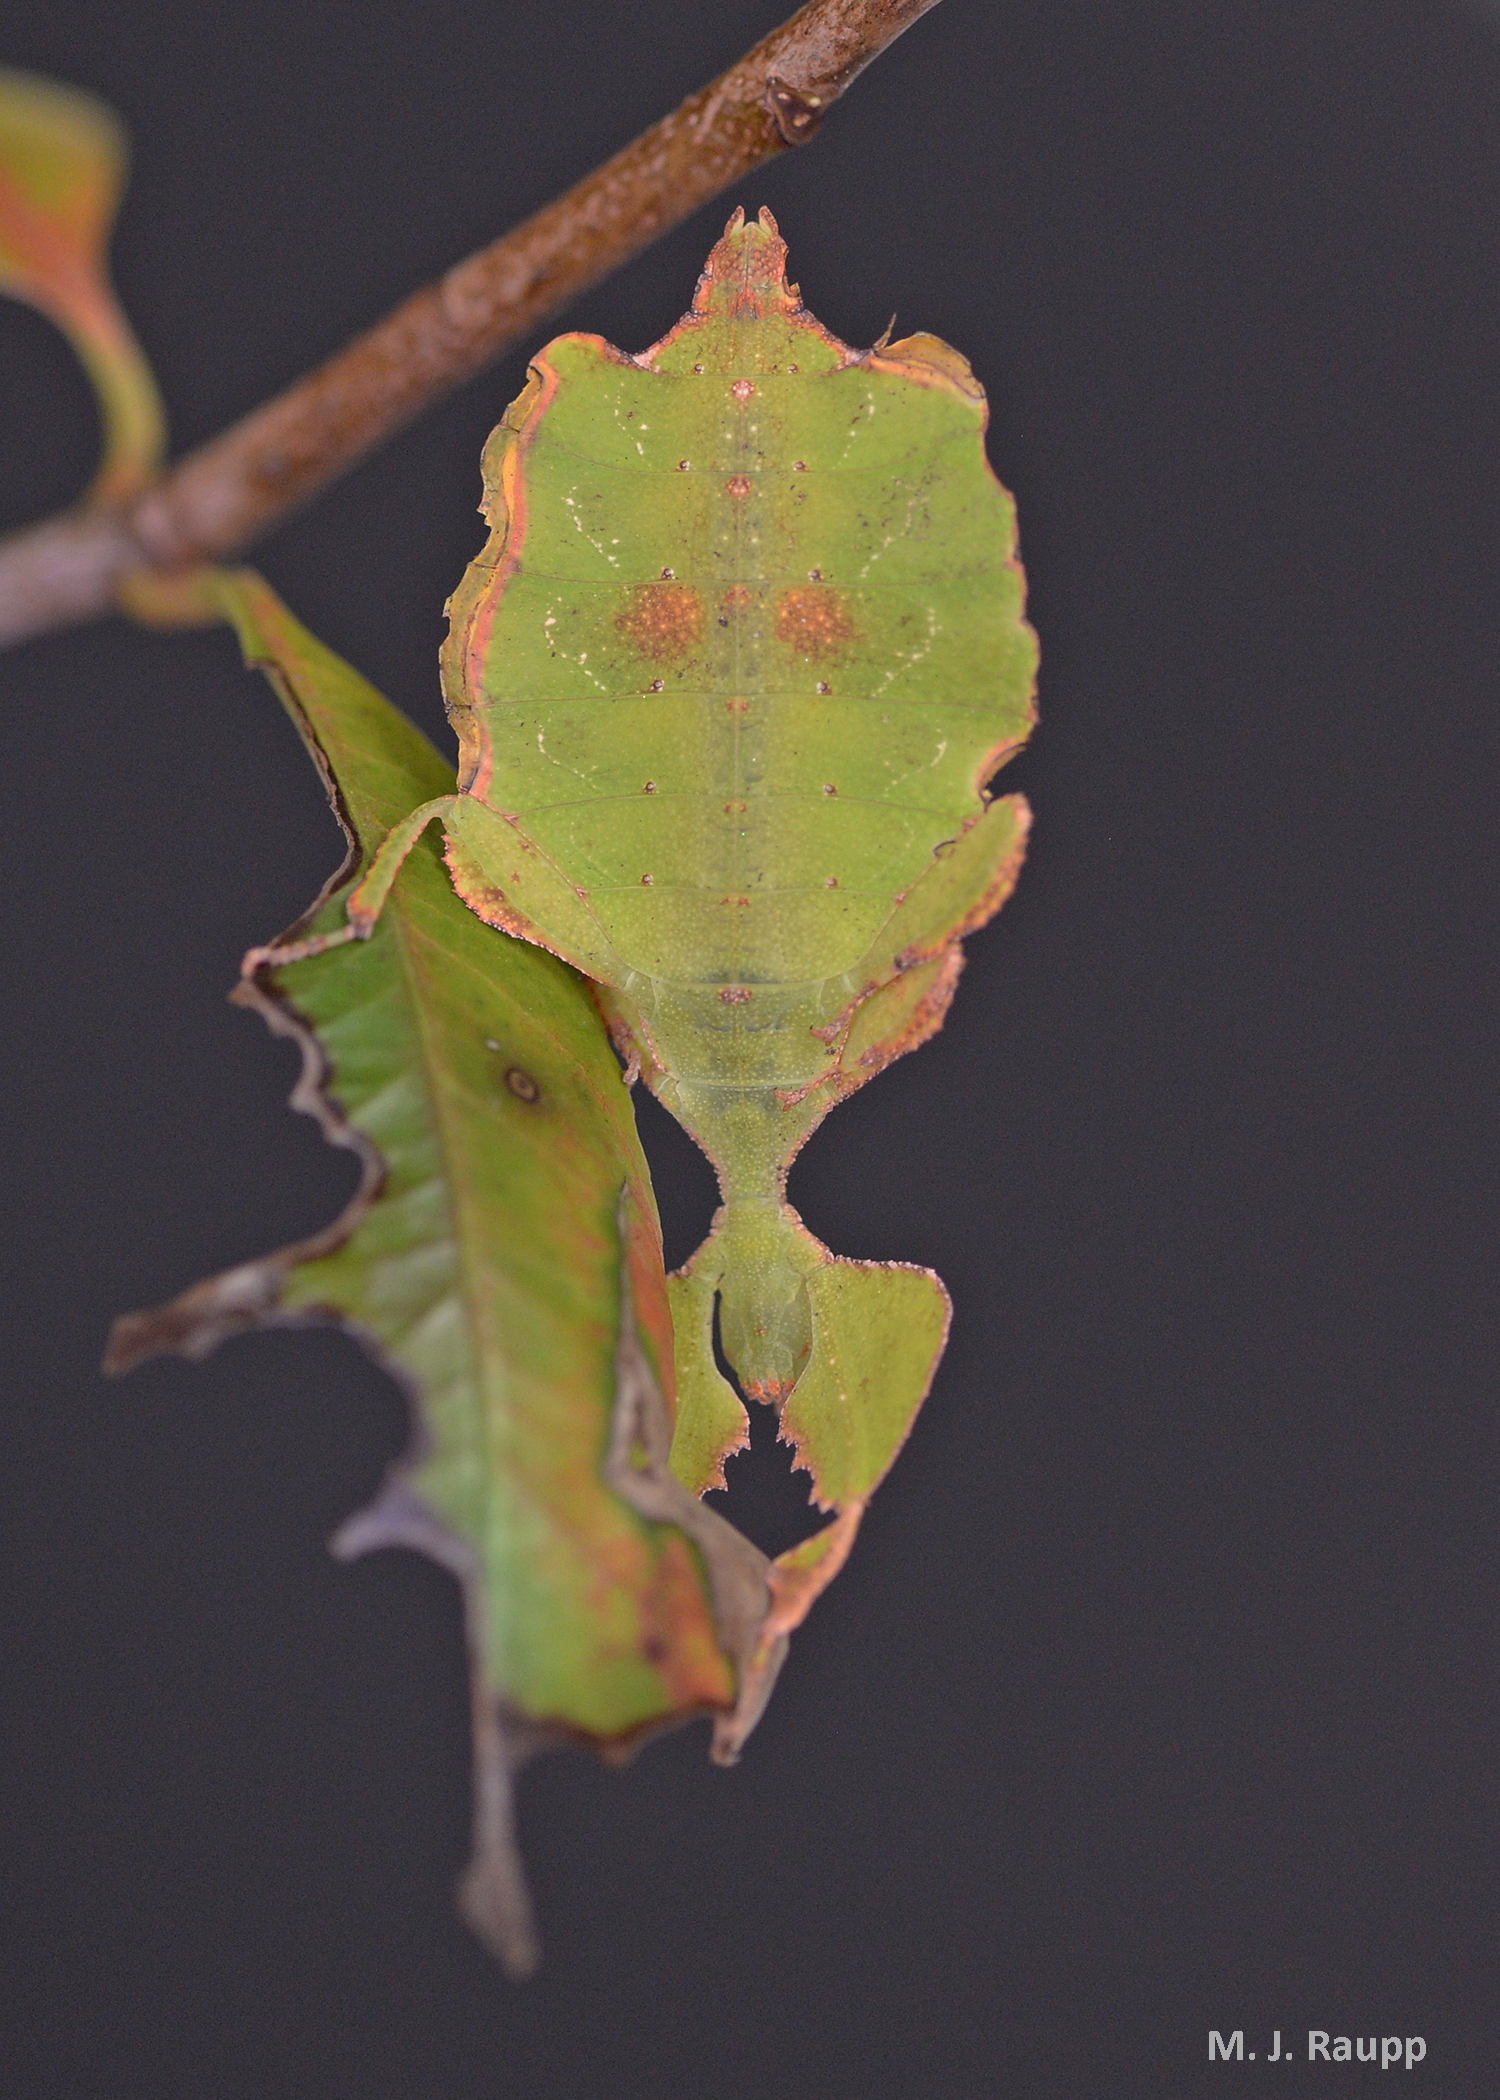 Just two faded leaves or is one a leaf insect?